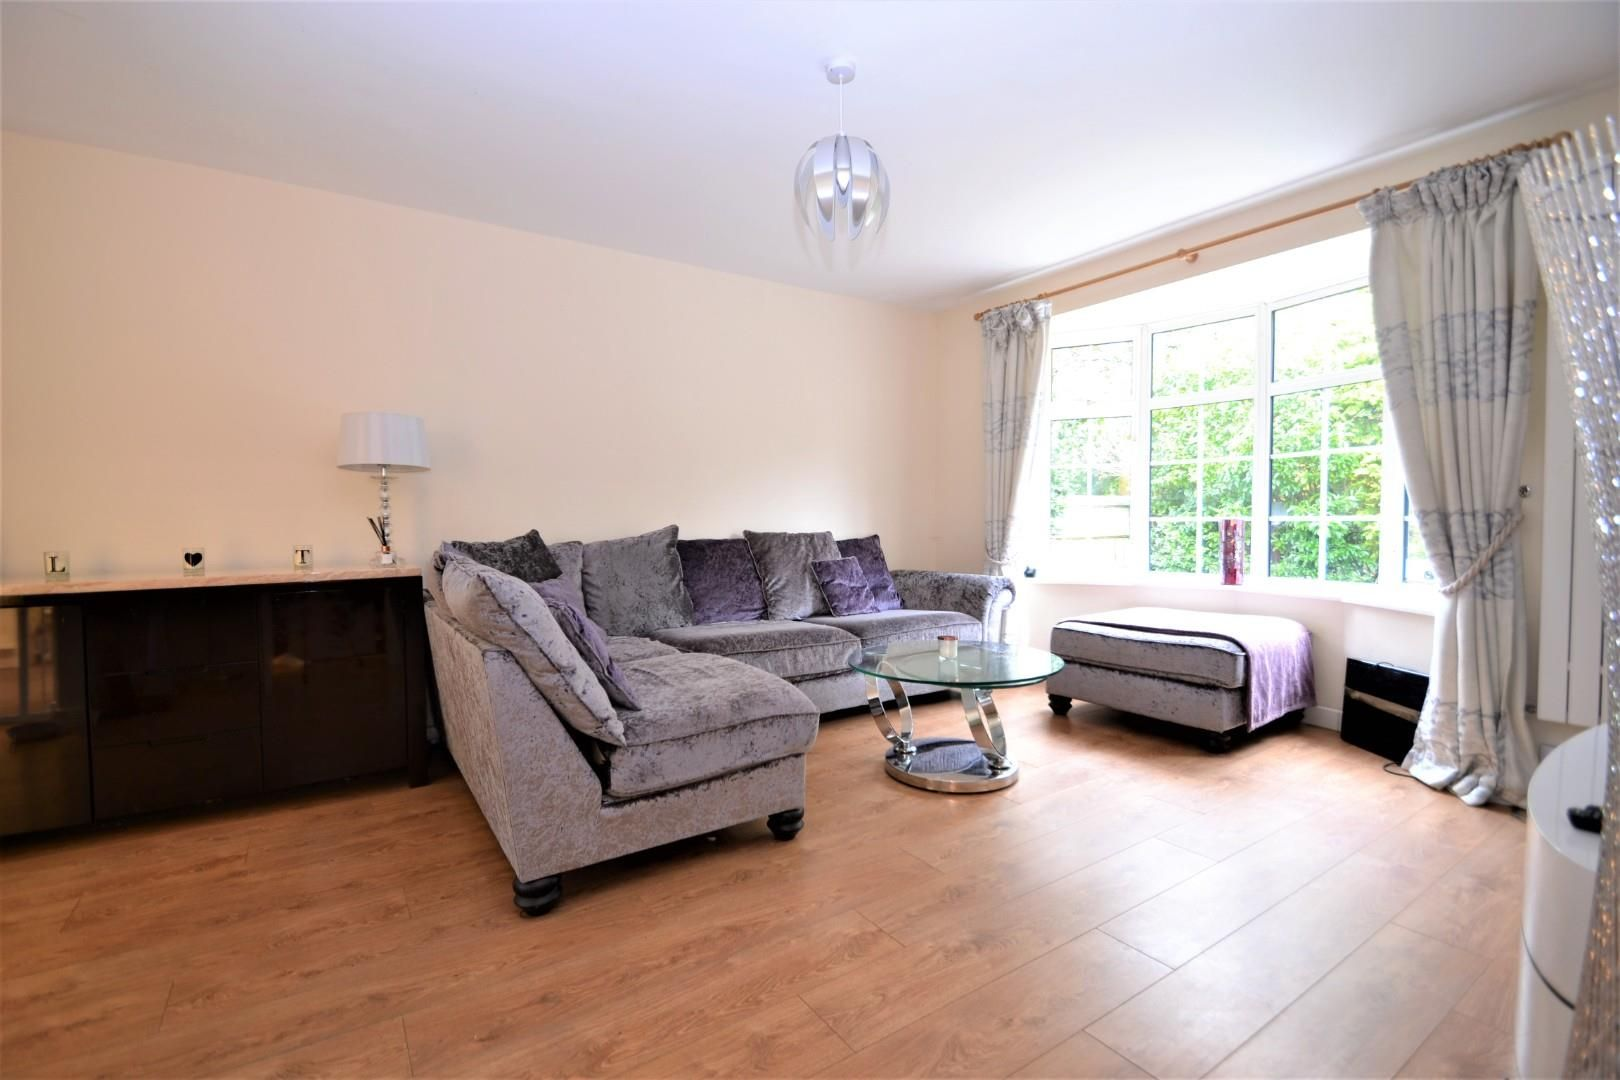 4 bed house for sale 3